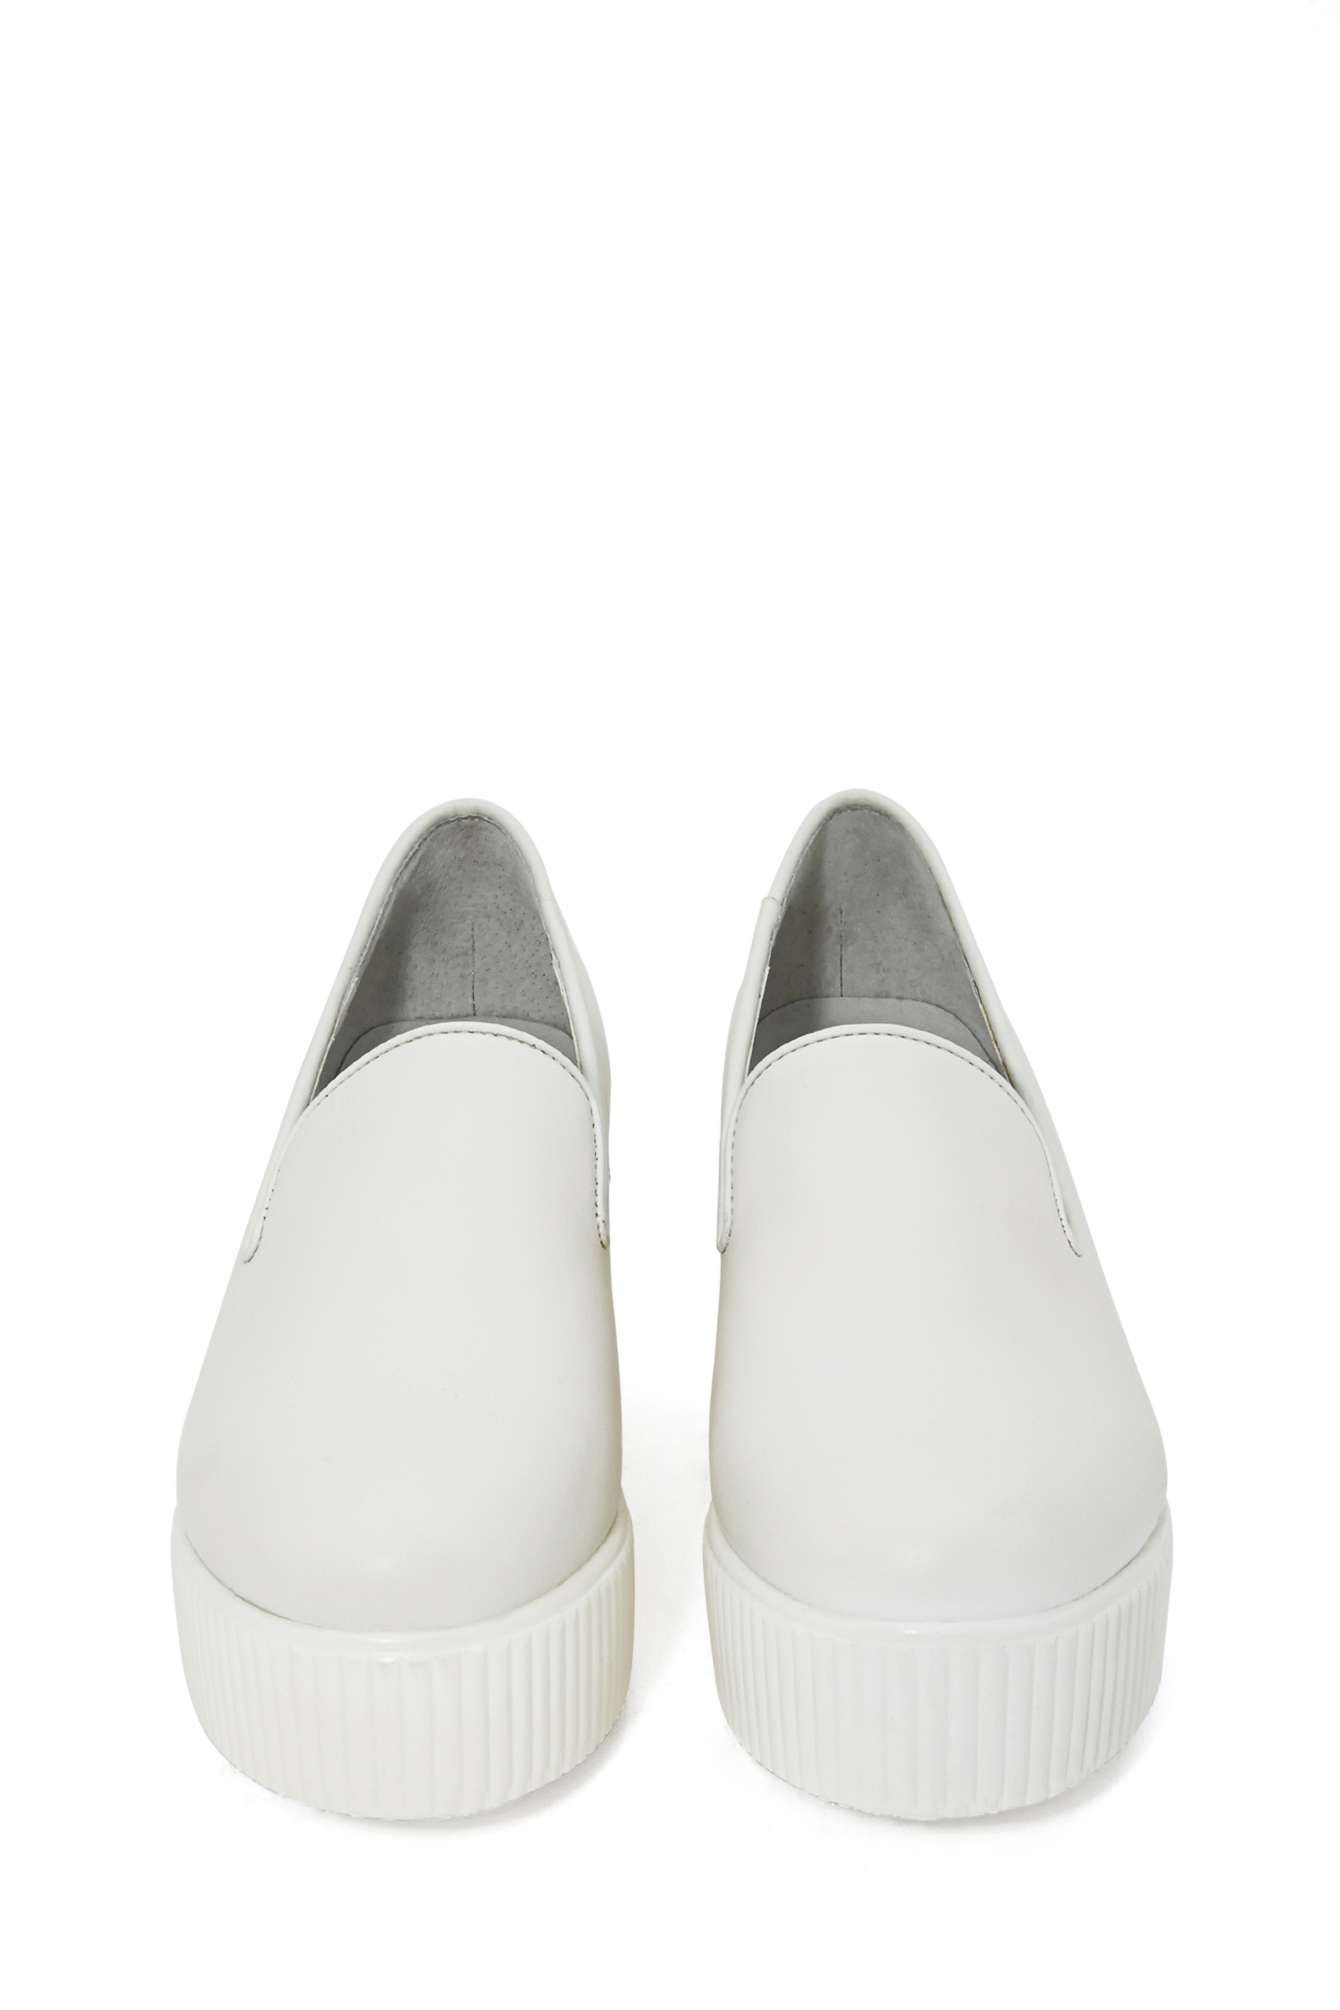 f7c3113418 Shellys London Lacharité Platform Loafer- White